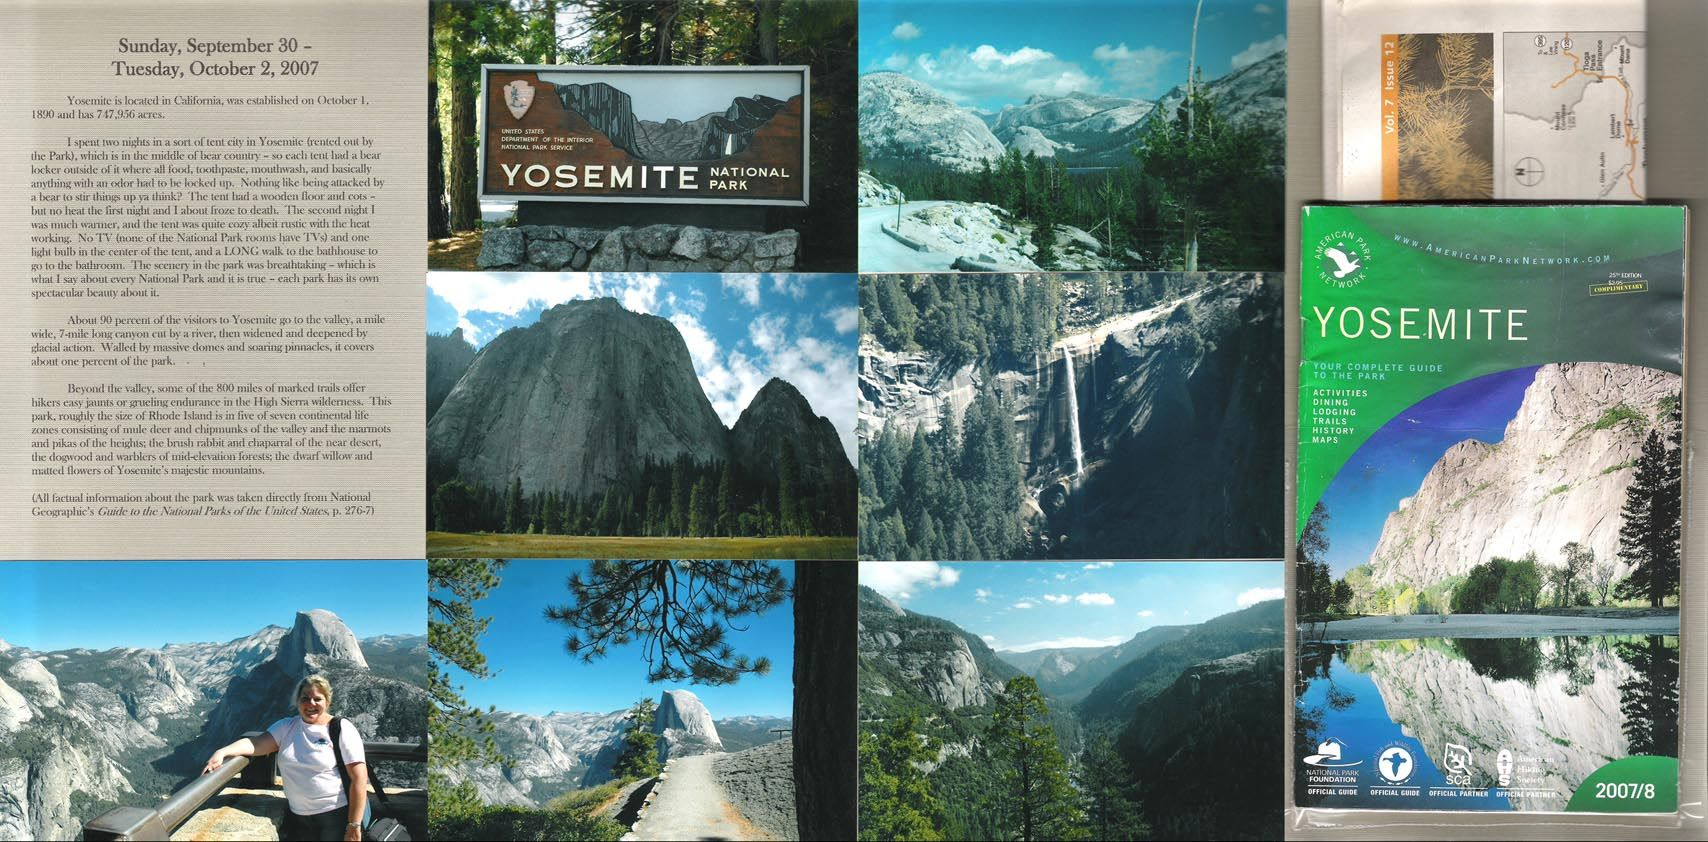 Travel scrapbook ideas - 1000 Images About Yosemite On Pinterest Parks Creative Memories And Summer Travel